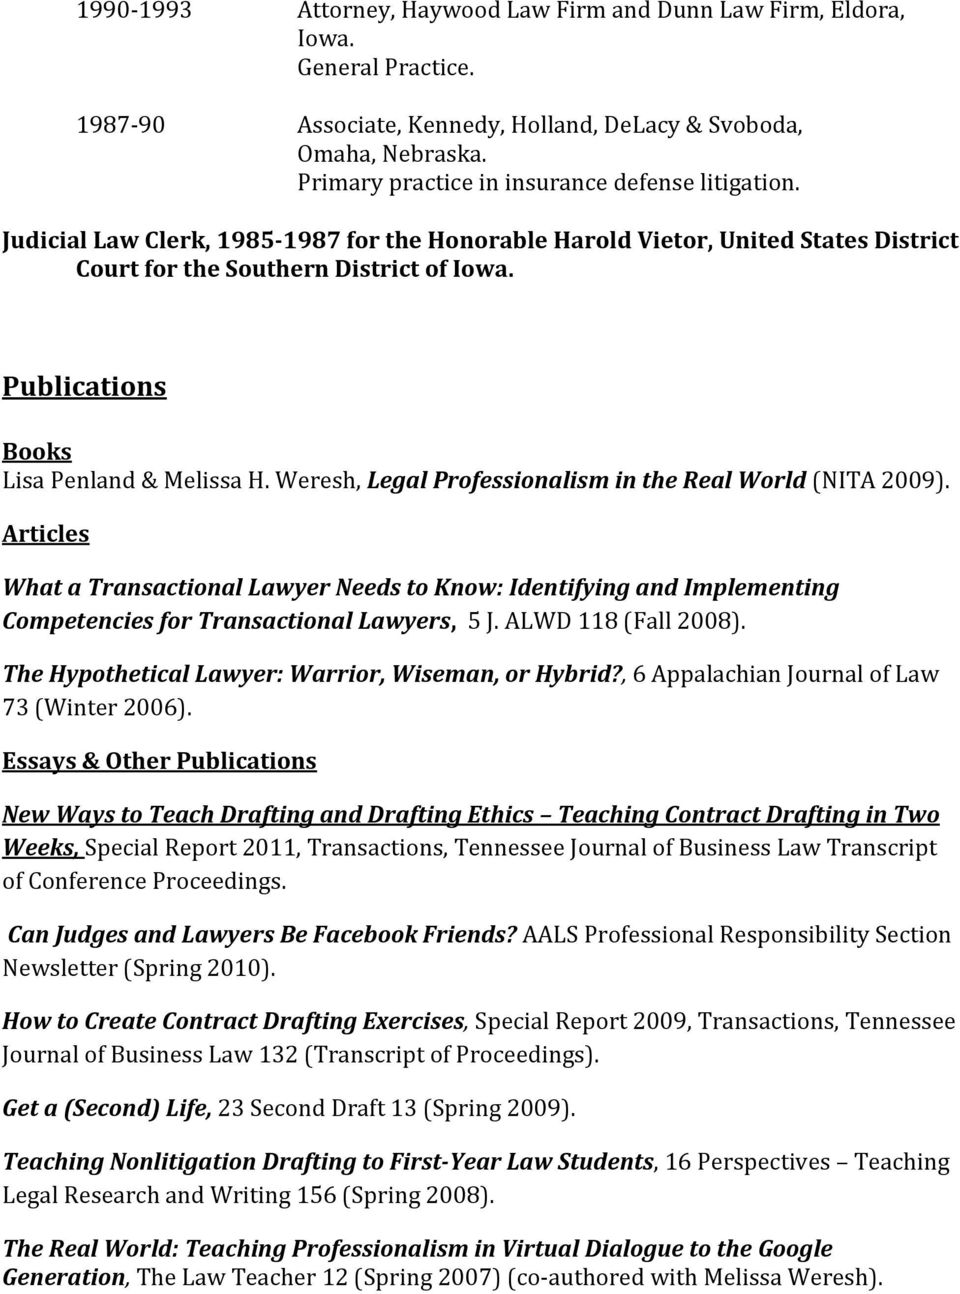 Publications Books Lisa Penland & Melissa H. Weresh, Legal Professionalism in the Real World (NITA 2009).